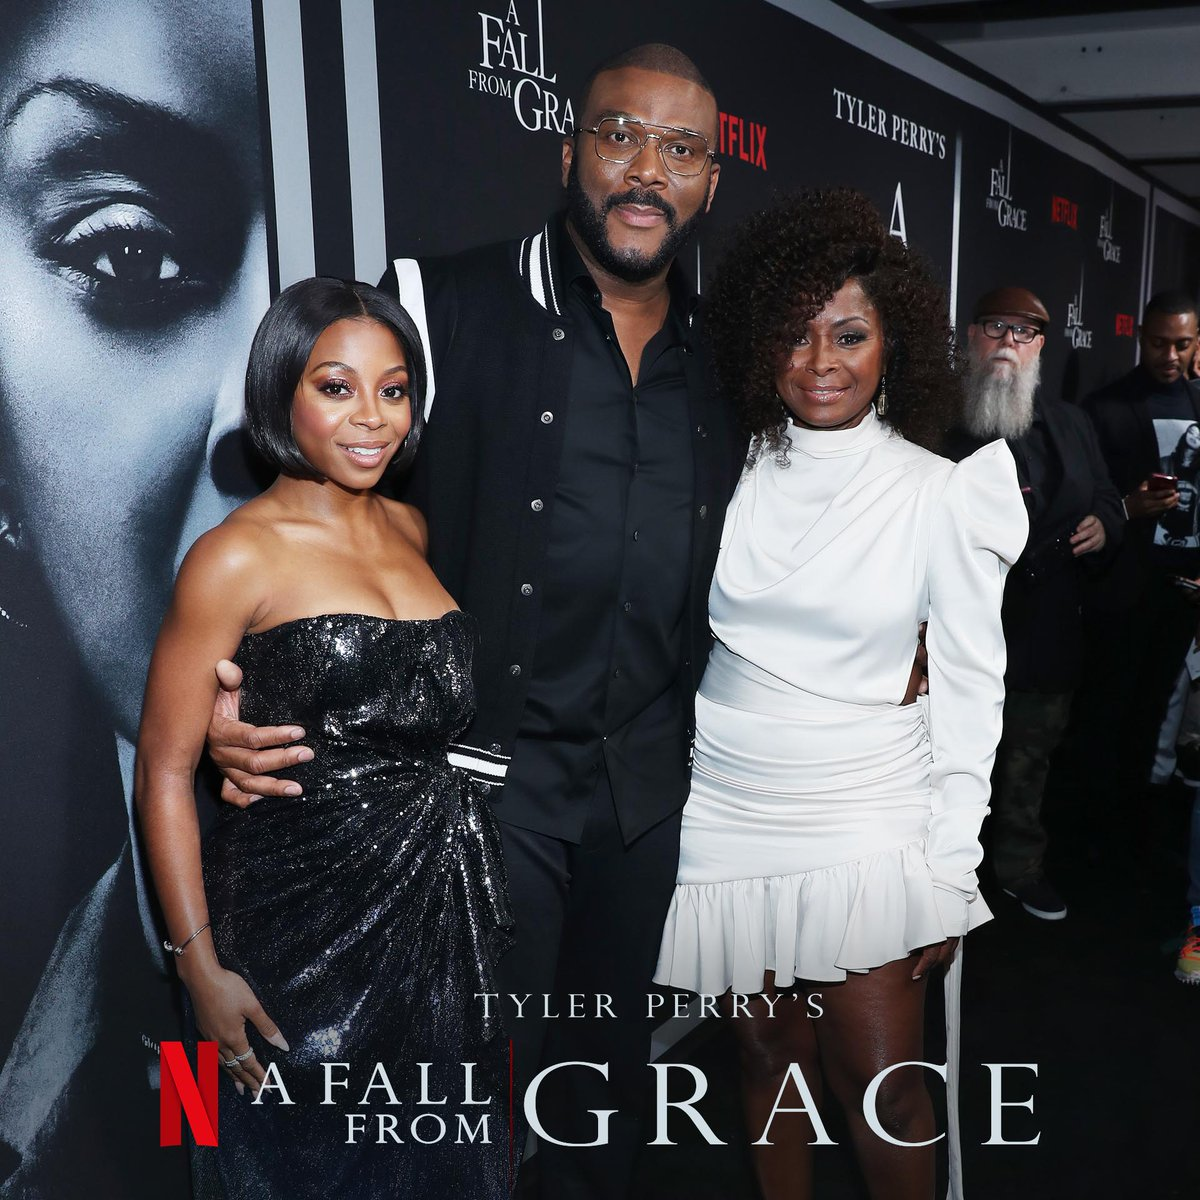 A Fall From Grace premiere was tooooo crazy!! You guys HAVE to see this movie!!! Coming out this weekend on @netflix. You guys aren't ready!! #AFallFromGrace 📷: @bennett_raglin